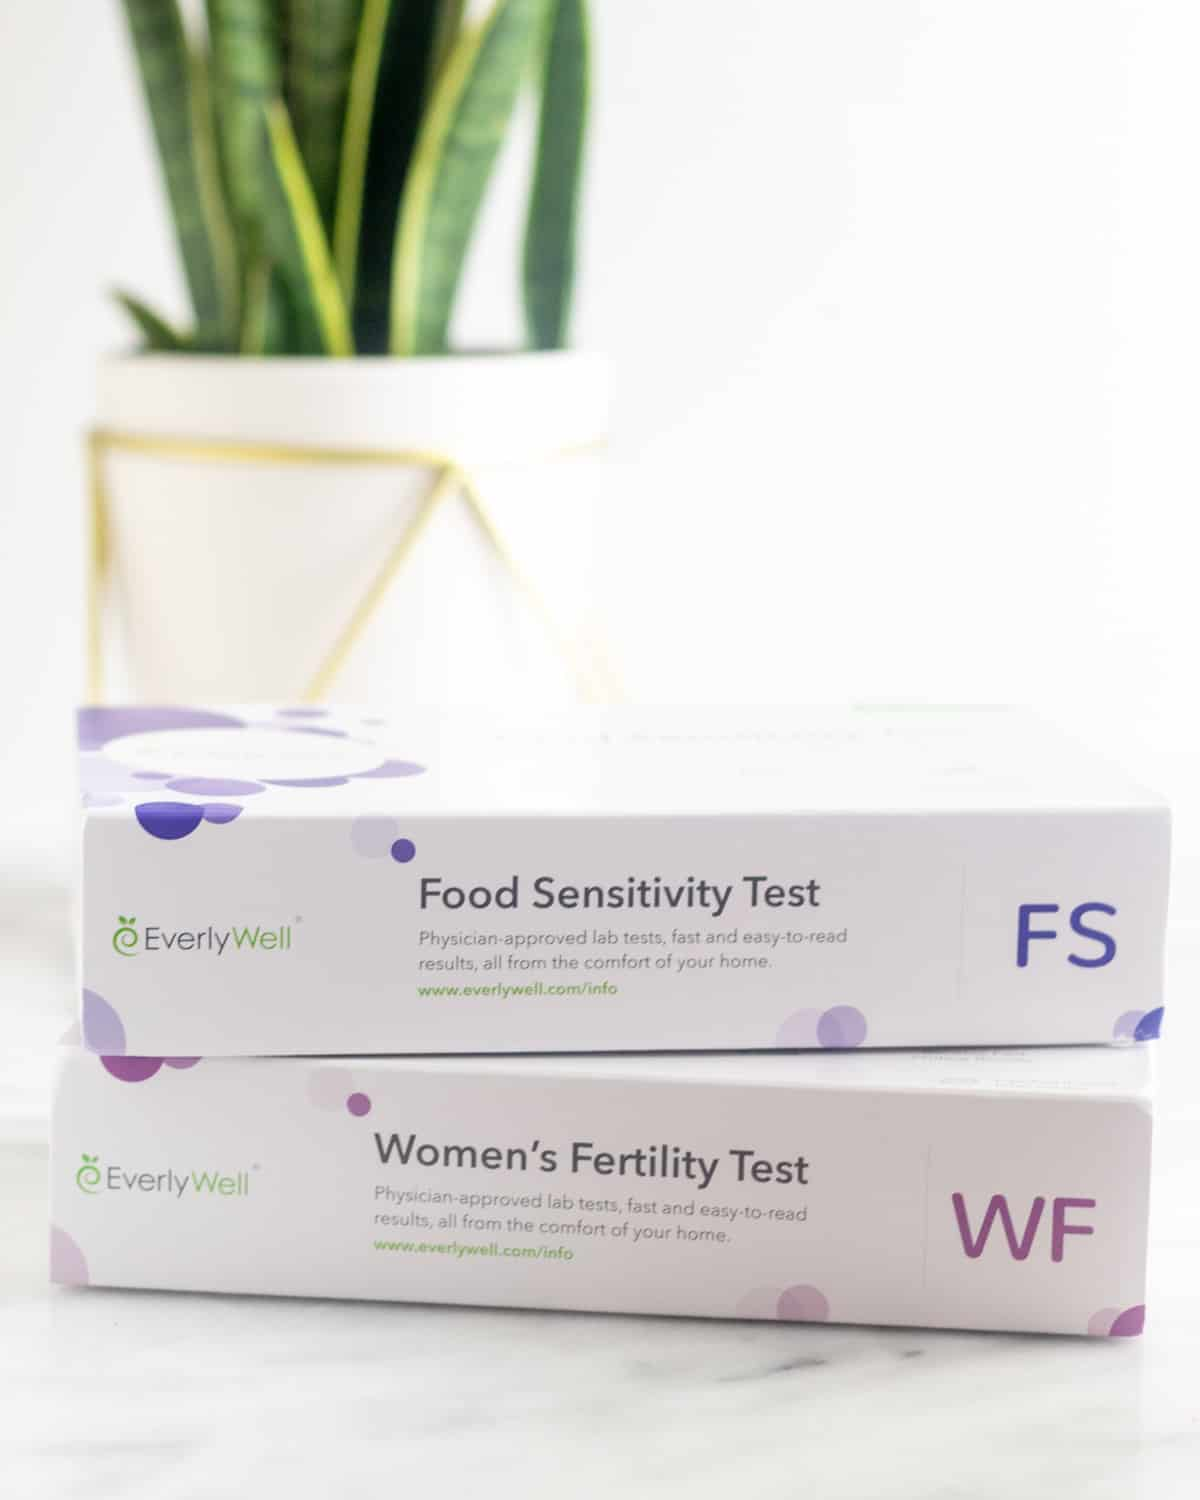 Two boxes of EverlyWell tests - one food sensitivity test and one women's fertility test - on a white counter with a plant behind it